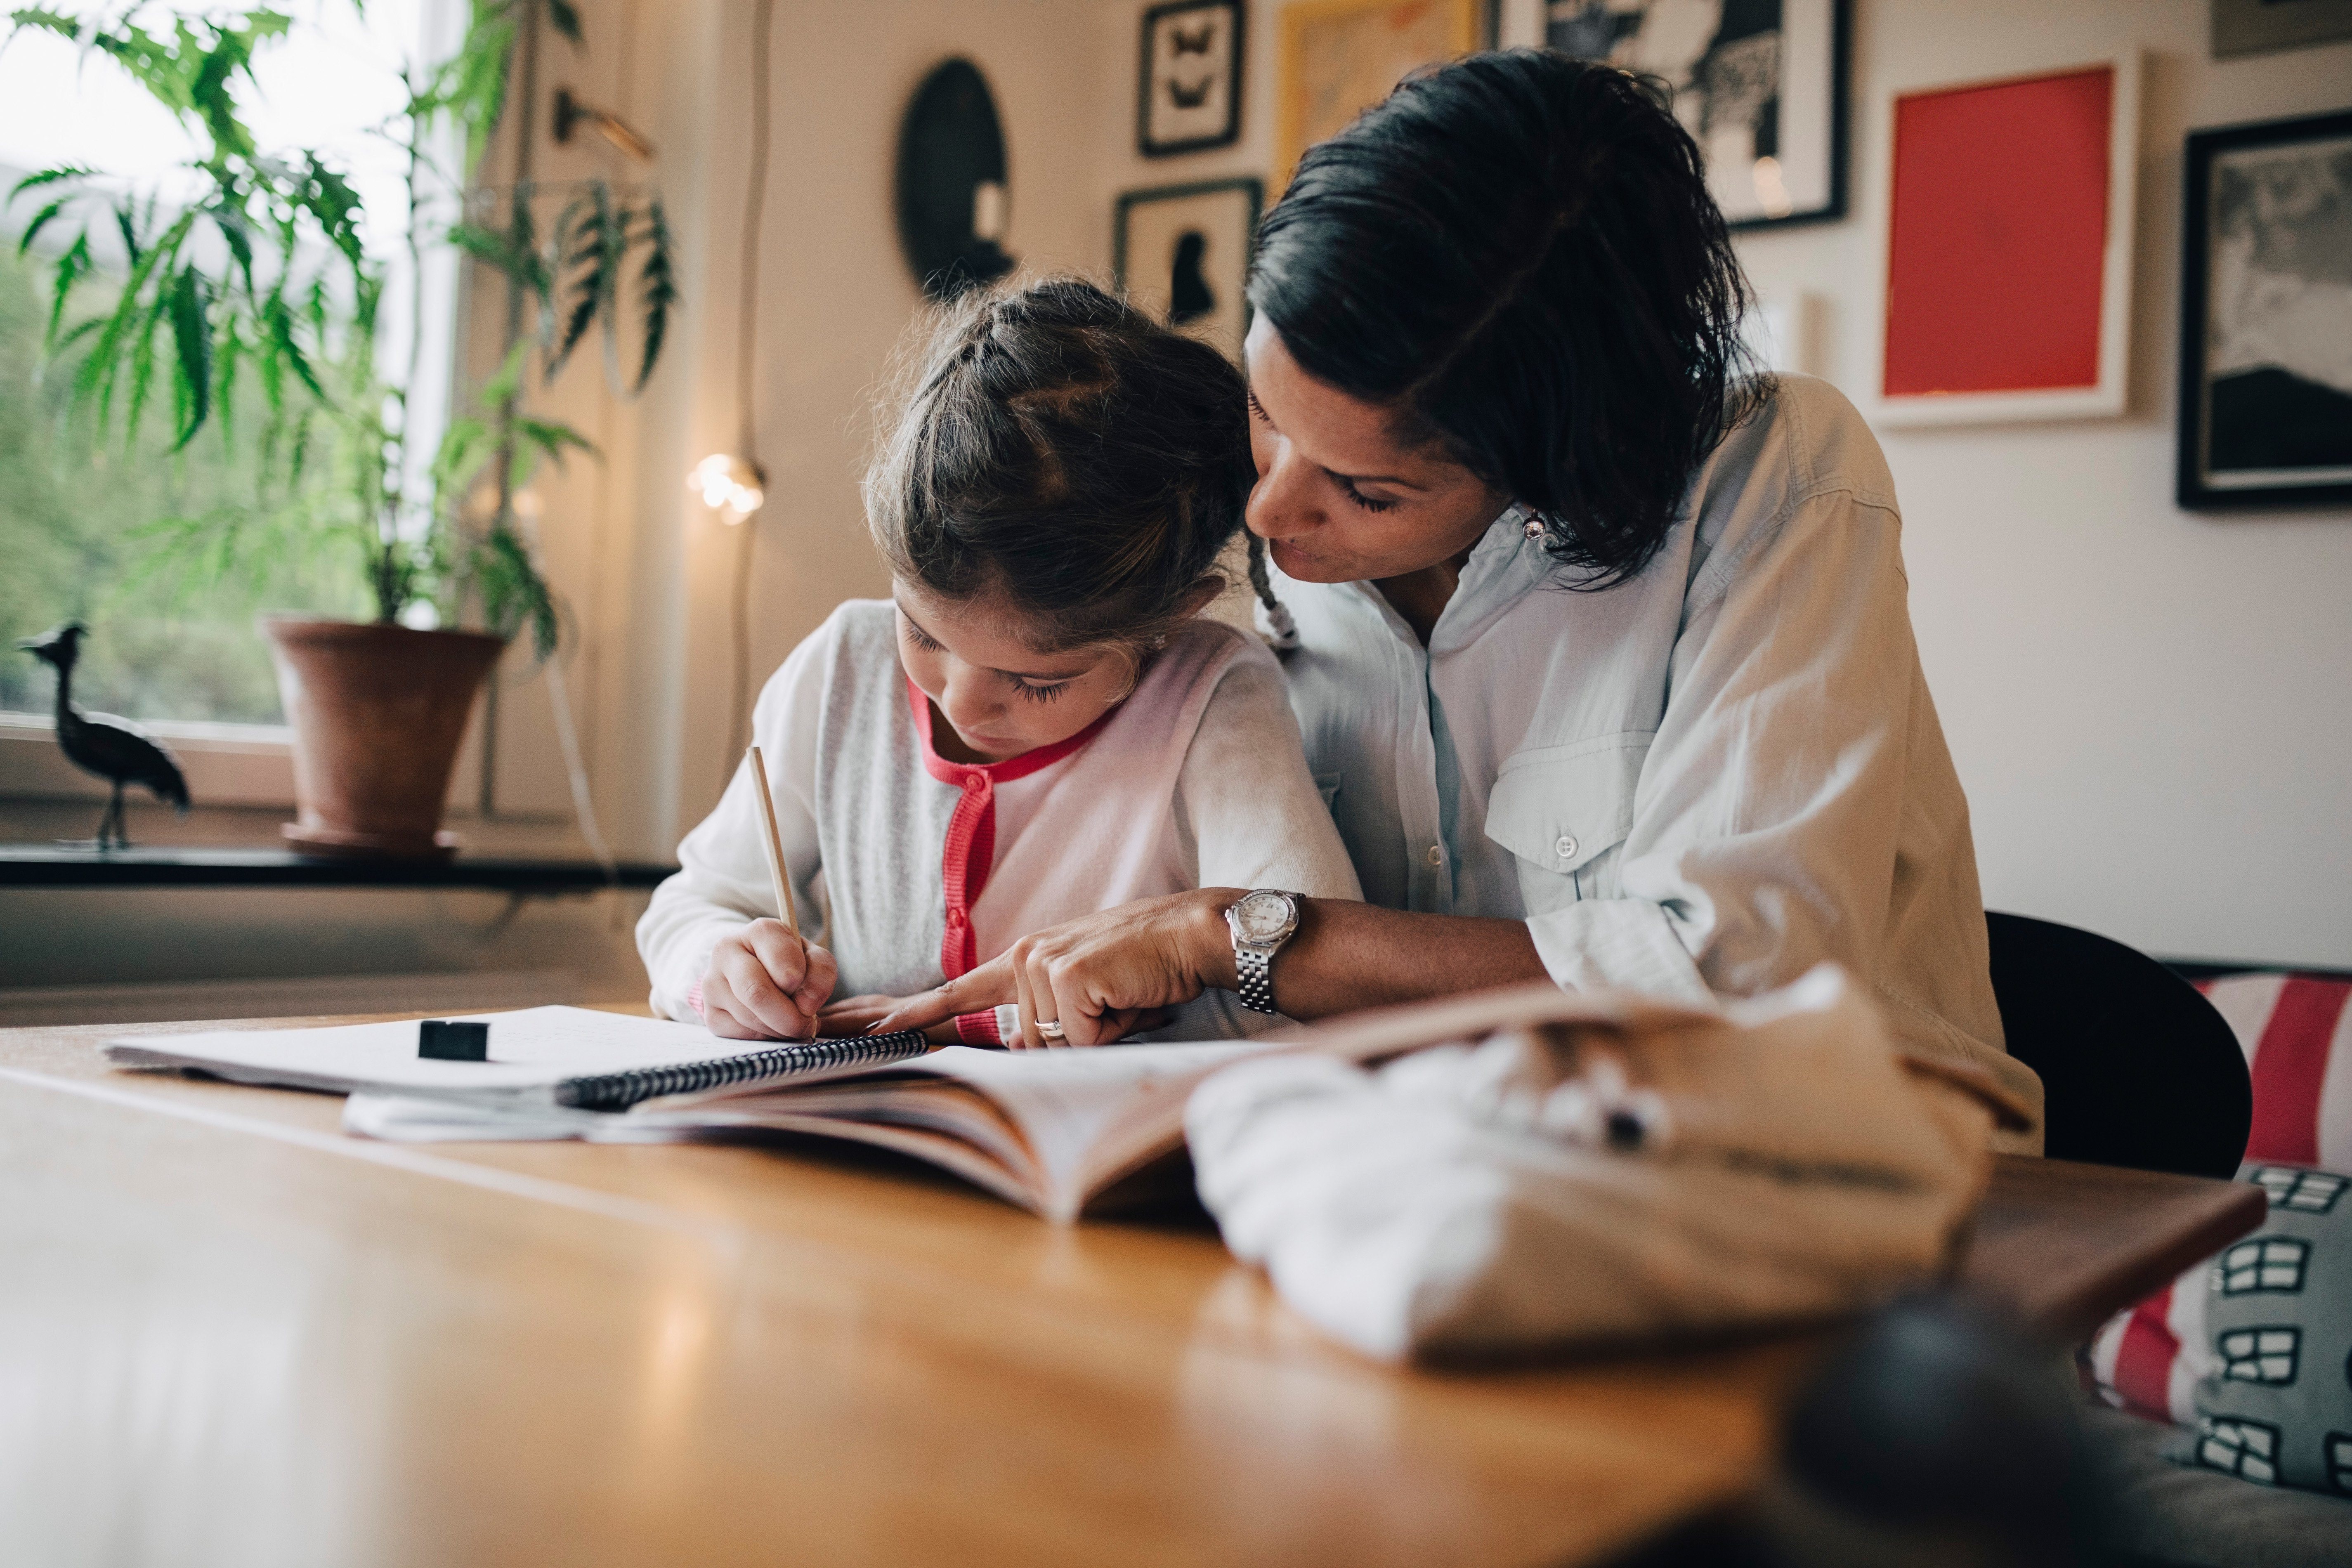 Mother assisting daughter in writing homework on table while sitting against wall at home